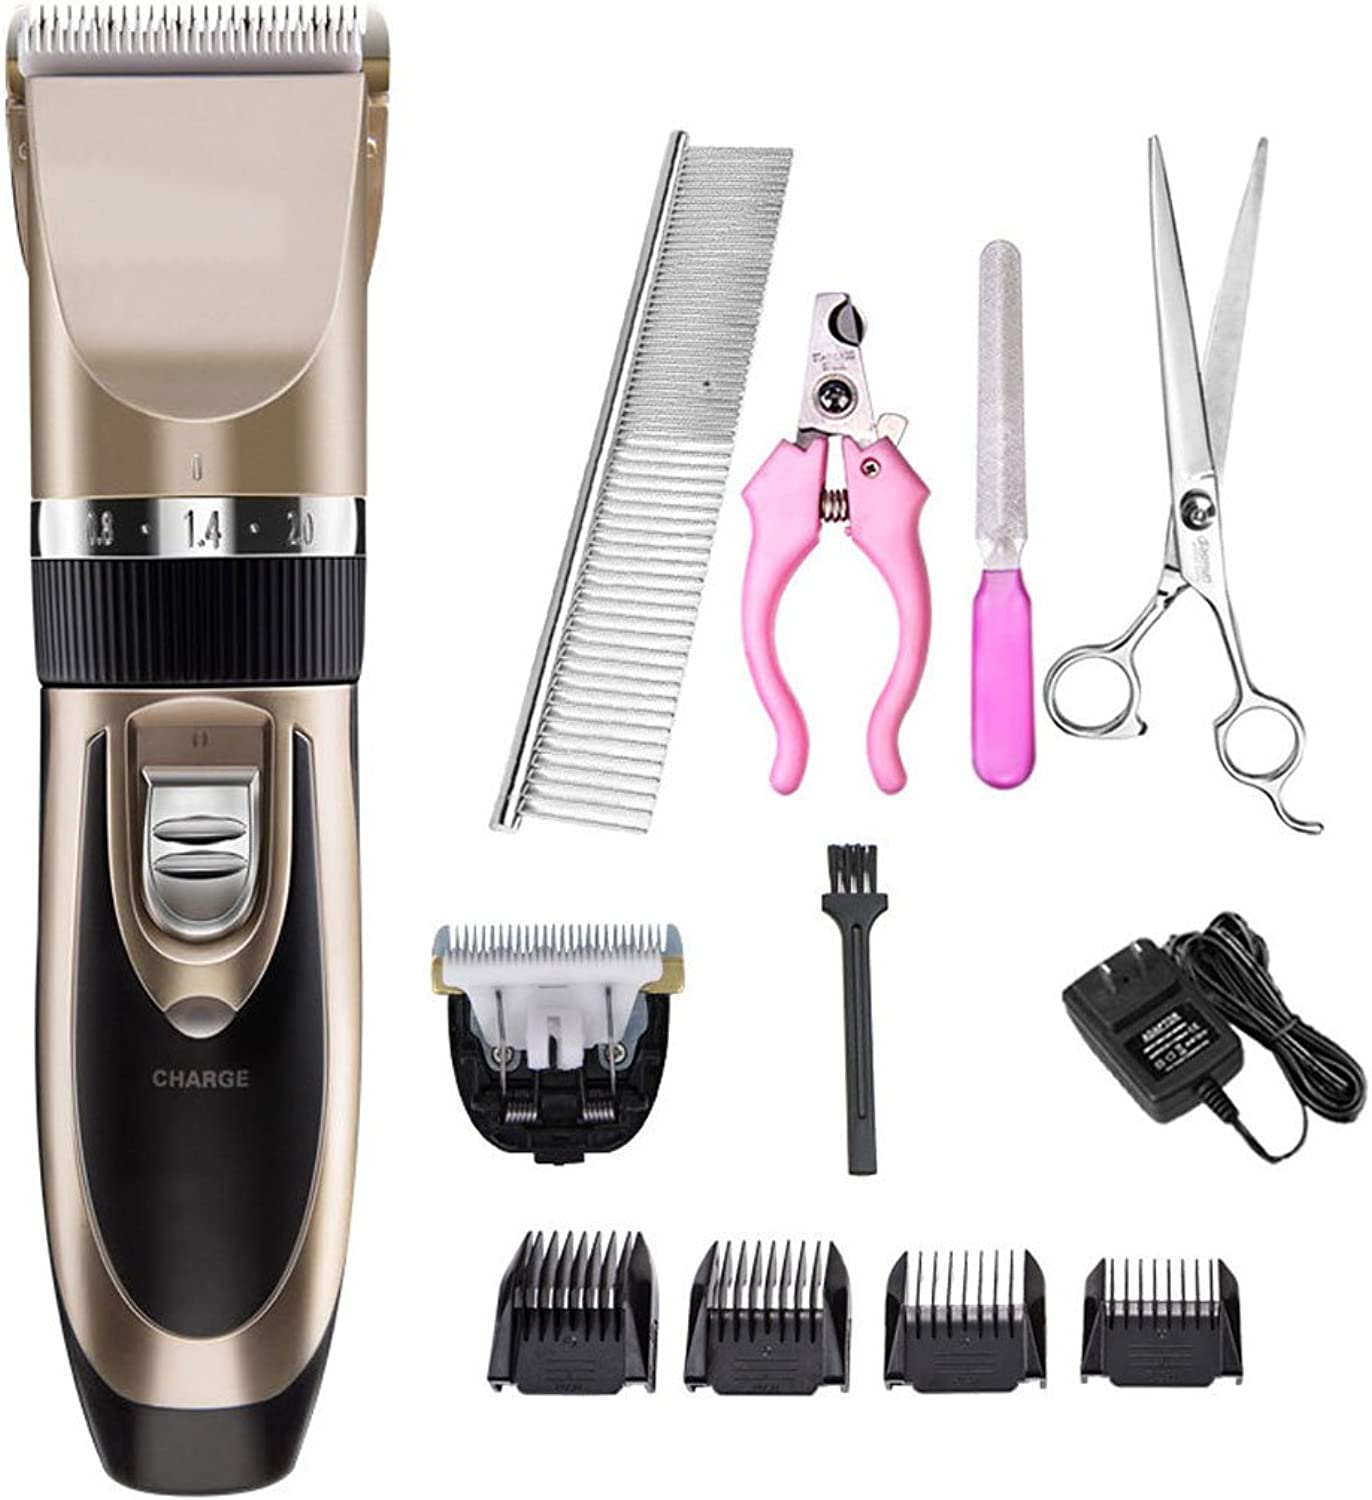 Pet grooming shaver, Low Noise and Low Vibration Convenient and easy to use Pet Grooming Clippers, for Small Animals(Cats,Dogs)  Champagne gold